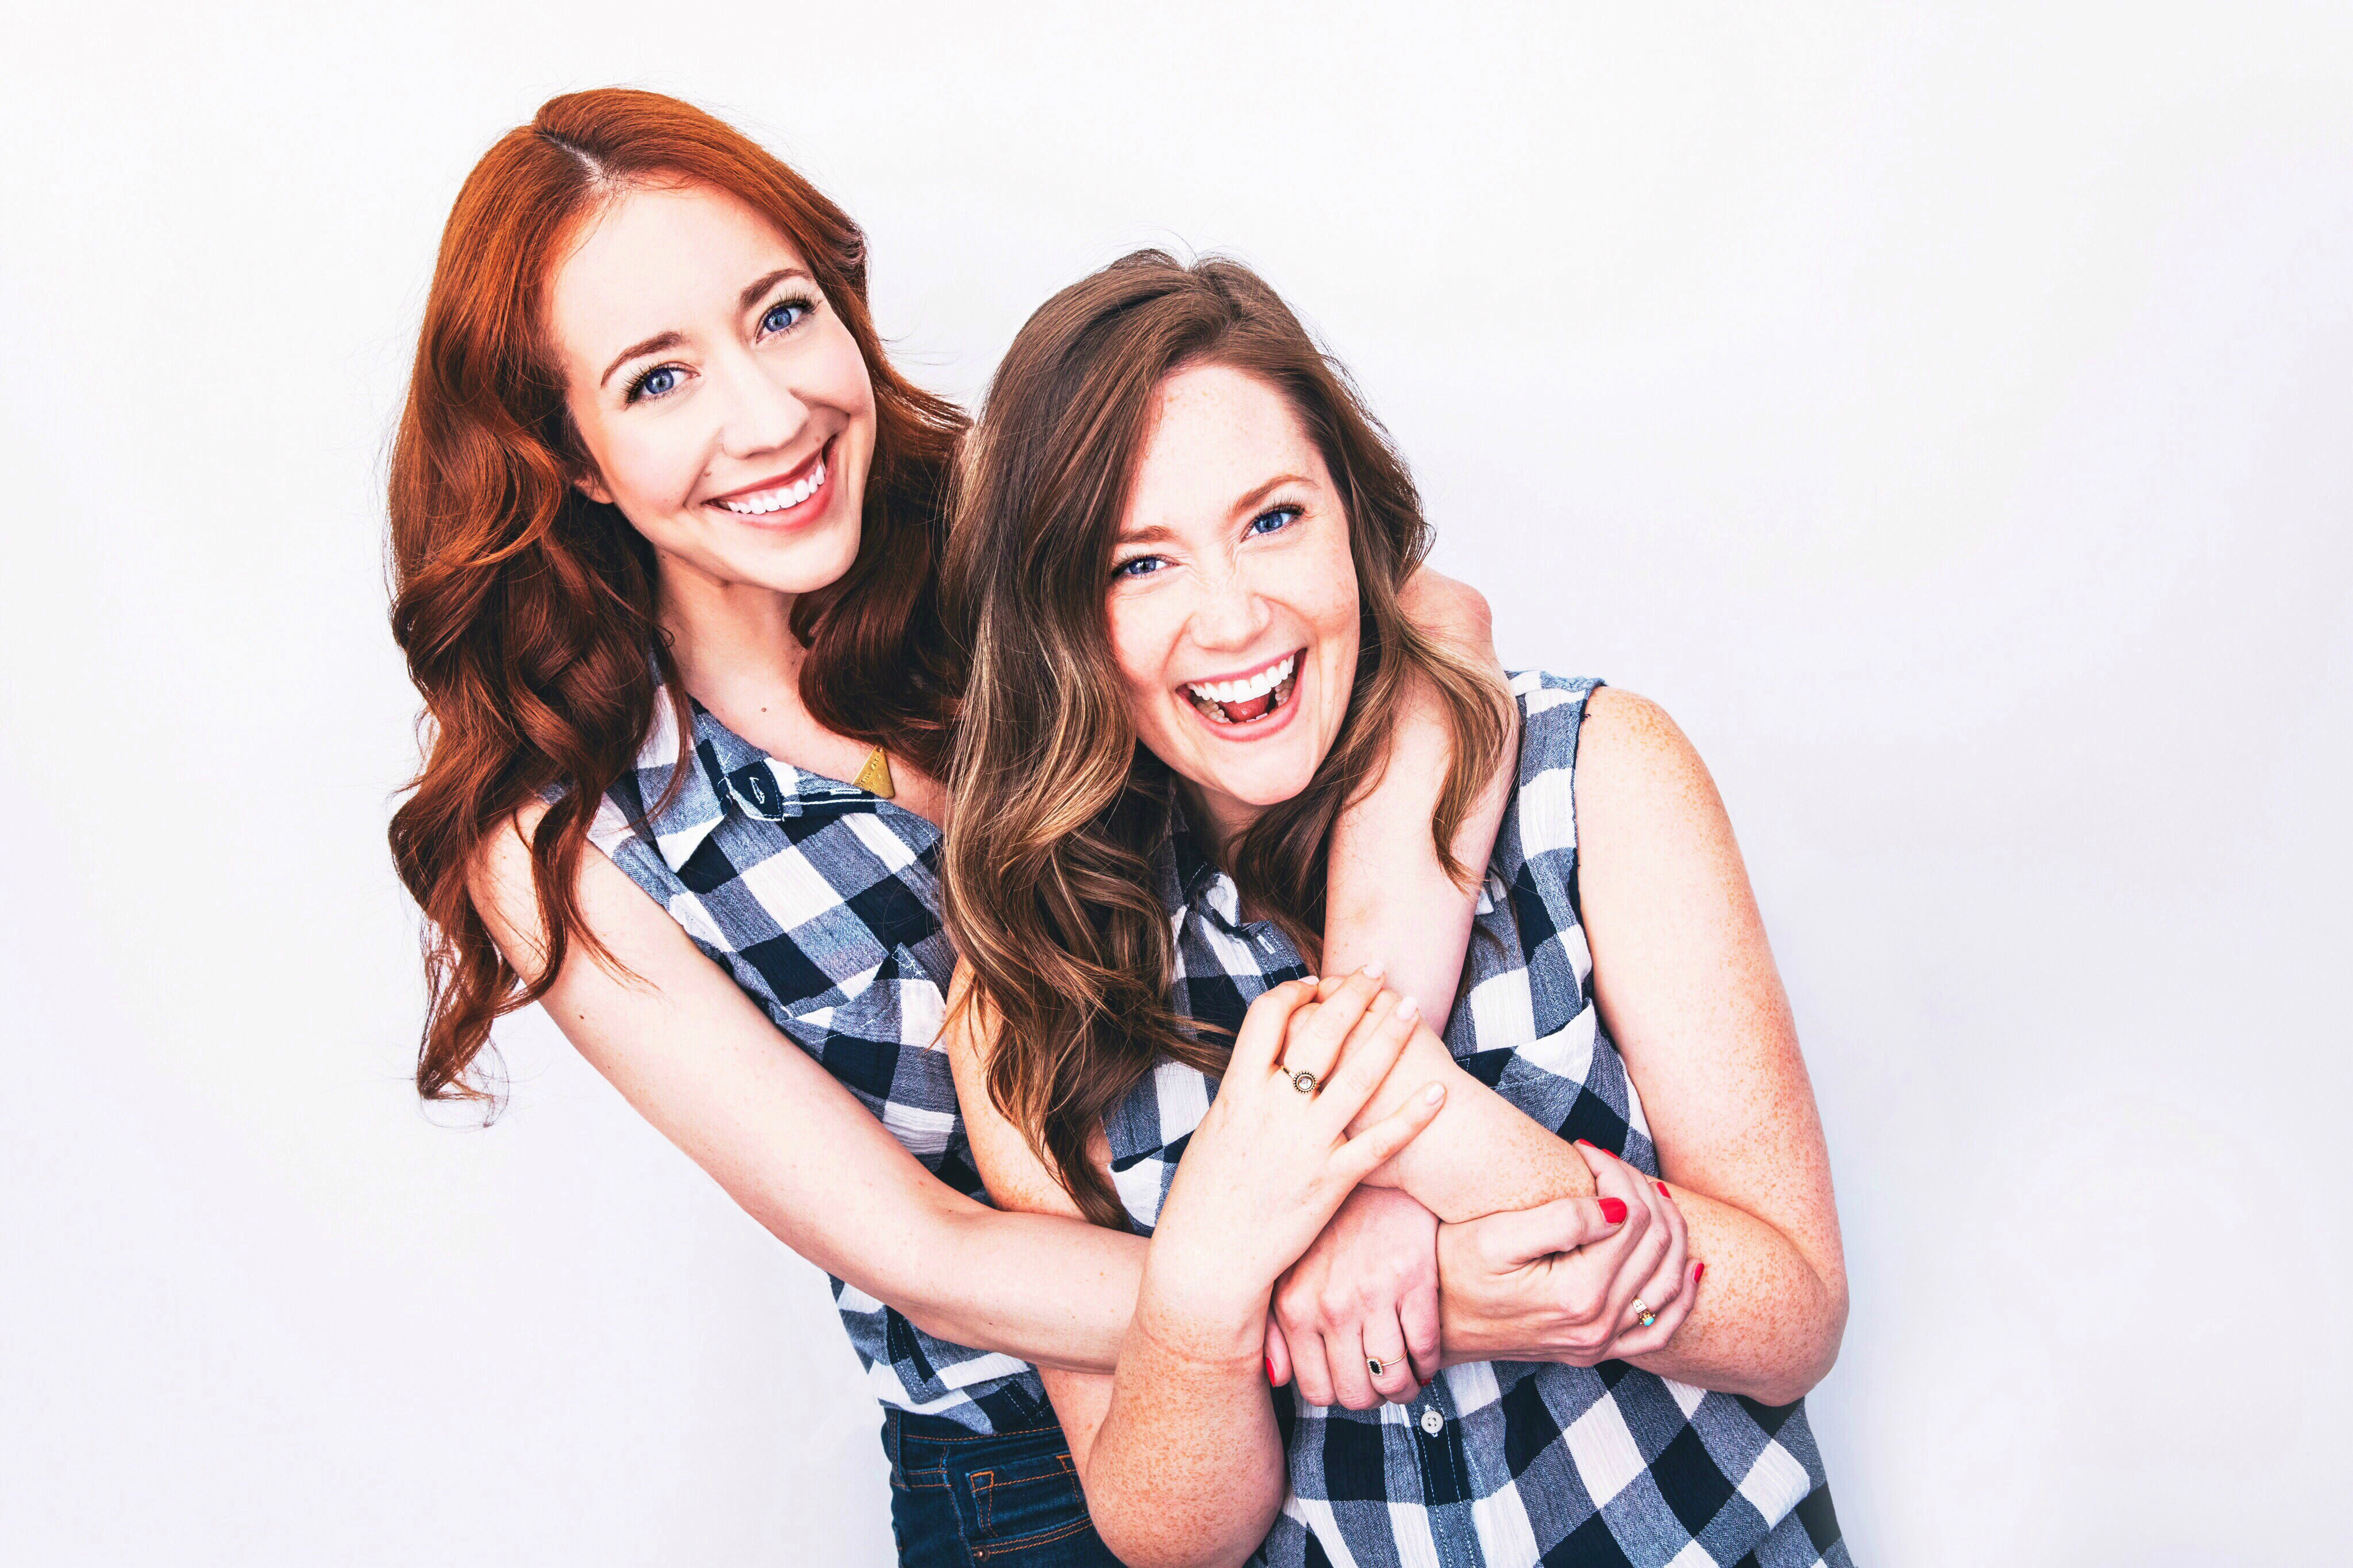 Caileigh Scott (L) and Jacklyn Collier (R) of Girlcrush Comedy.